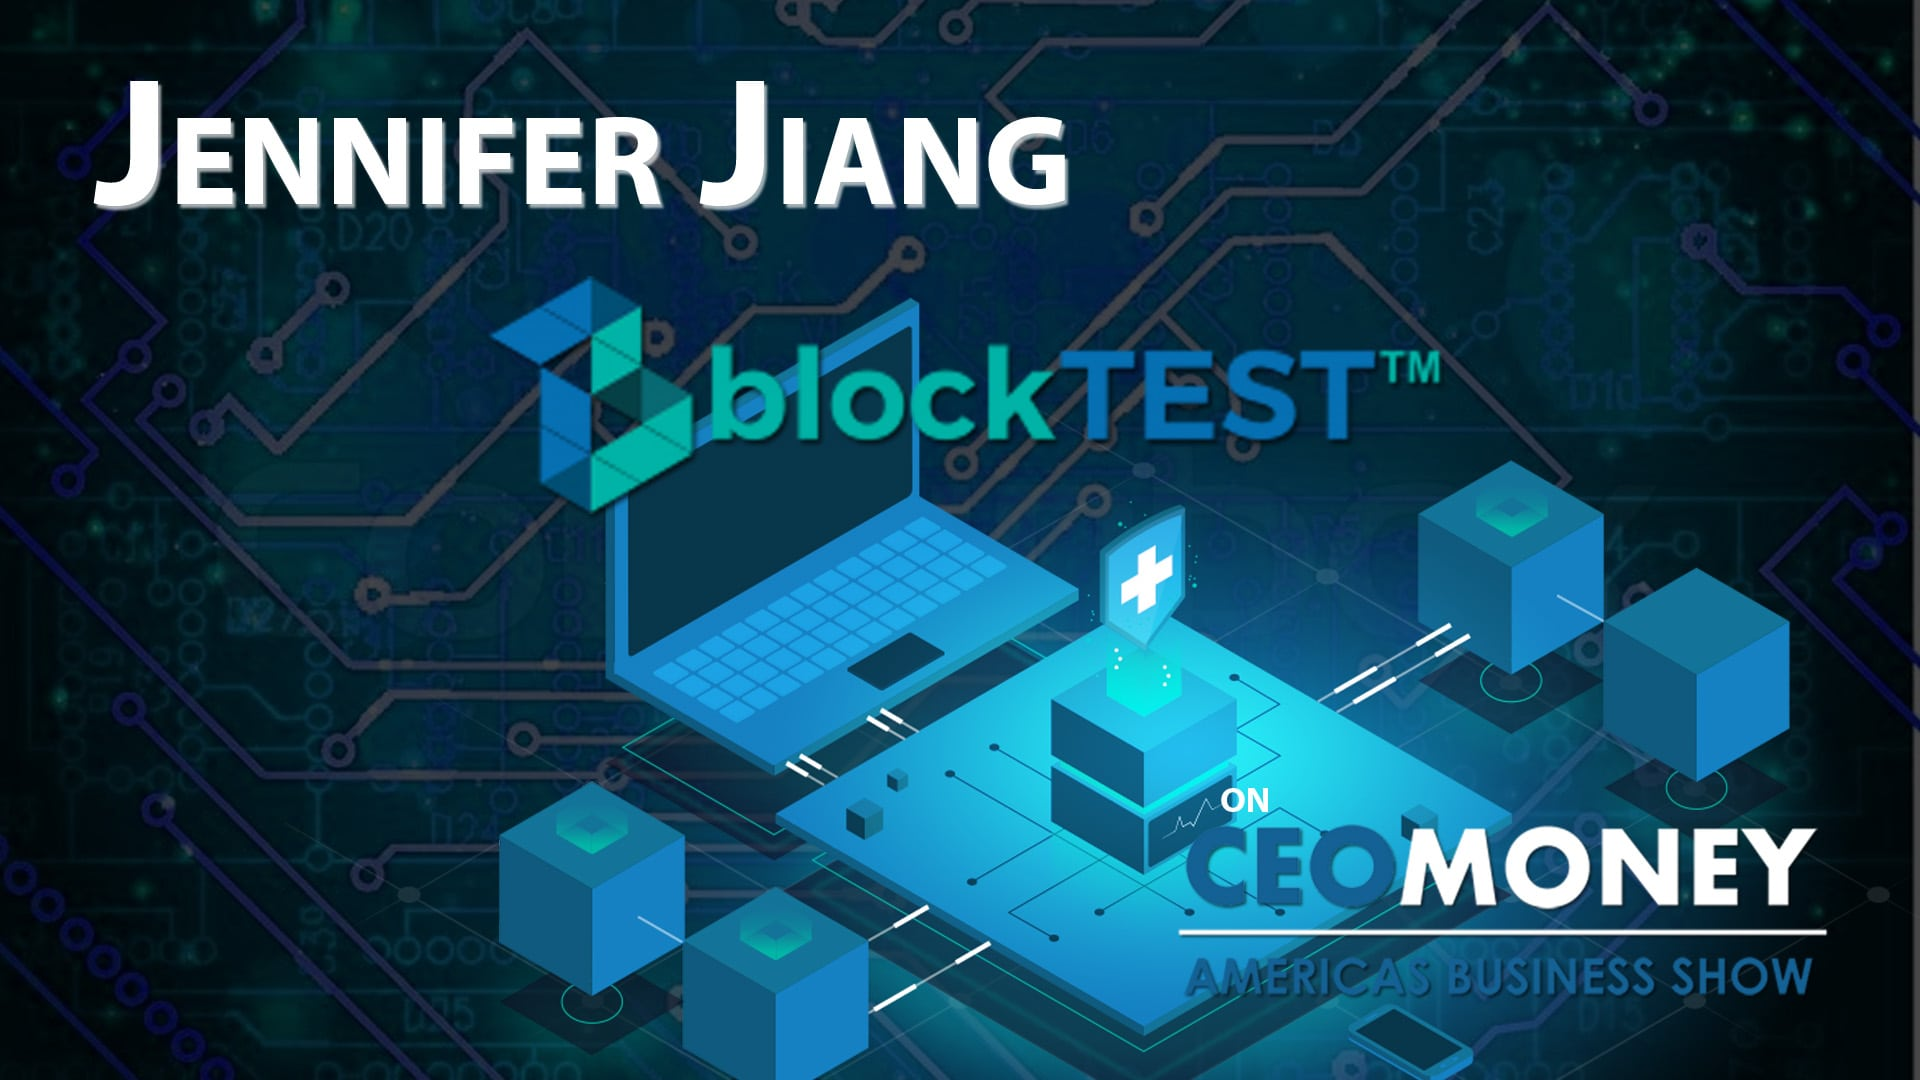 BlockTEST is a project founded at MIT to evaluate blockchain projects for performance and security